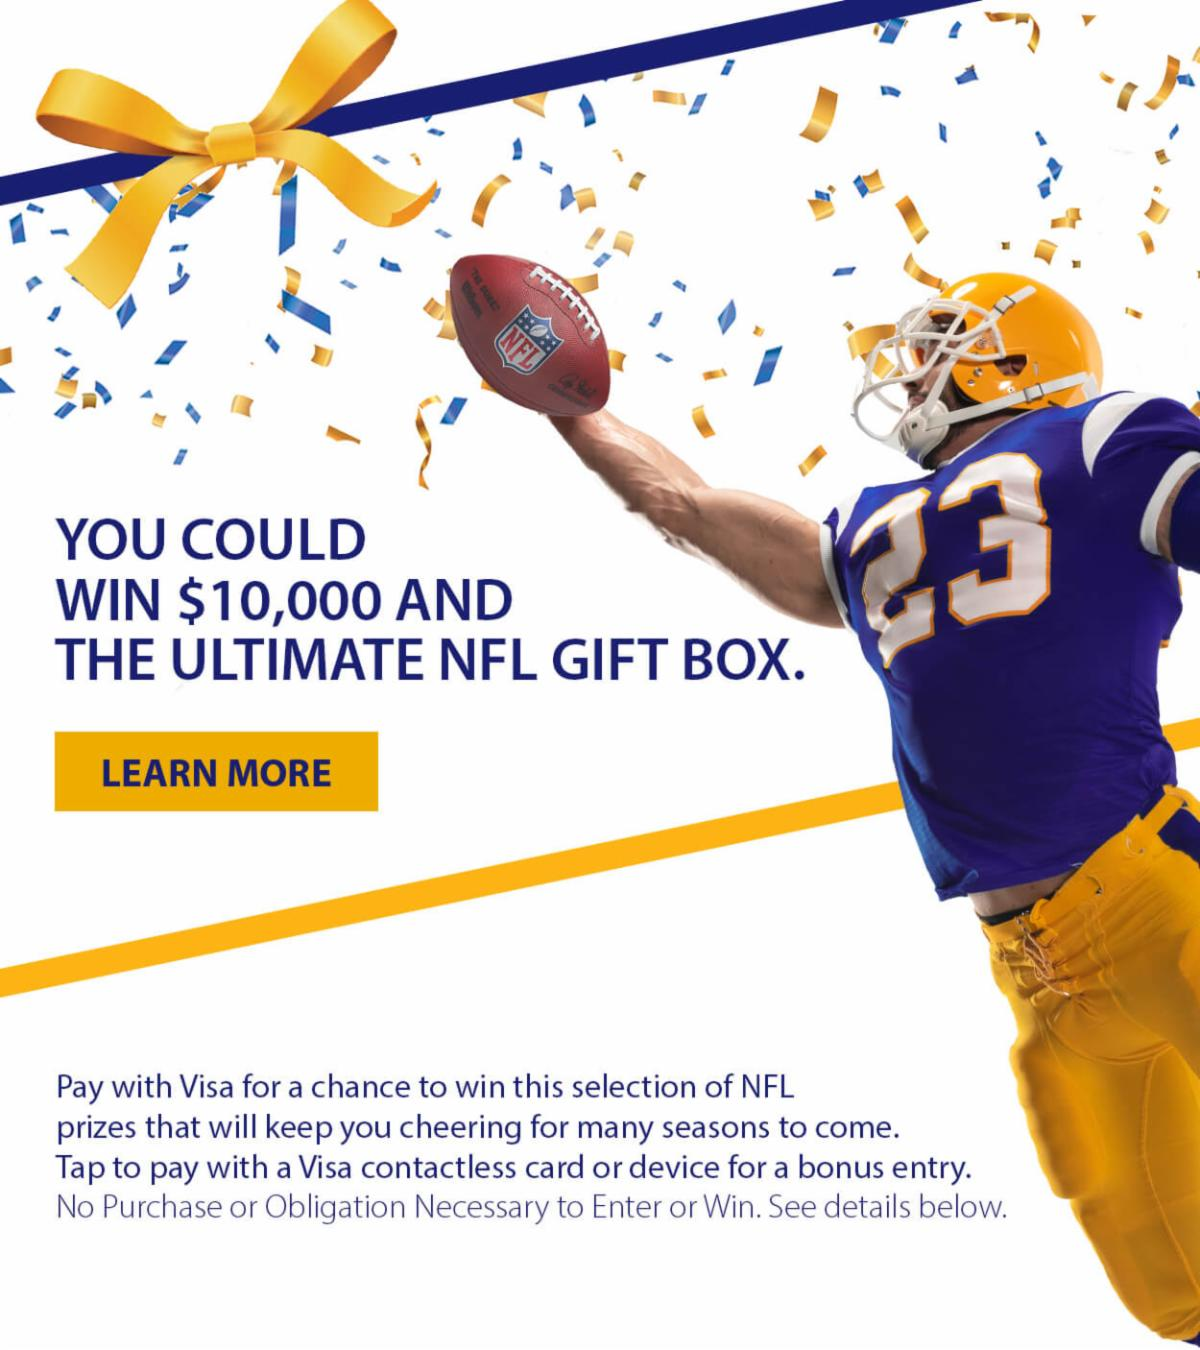 YOU COULD WIN $10,000 ANDTHE ULTIMATE NFL GIFT BOX